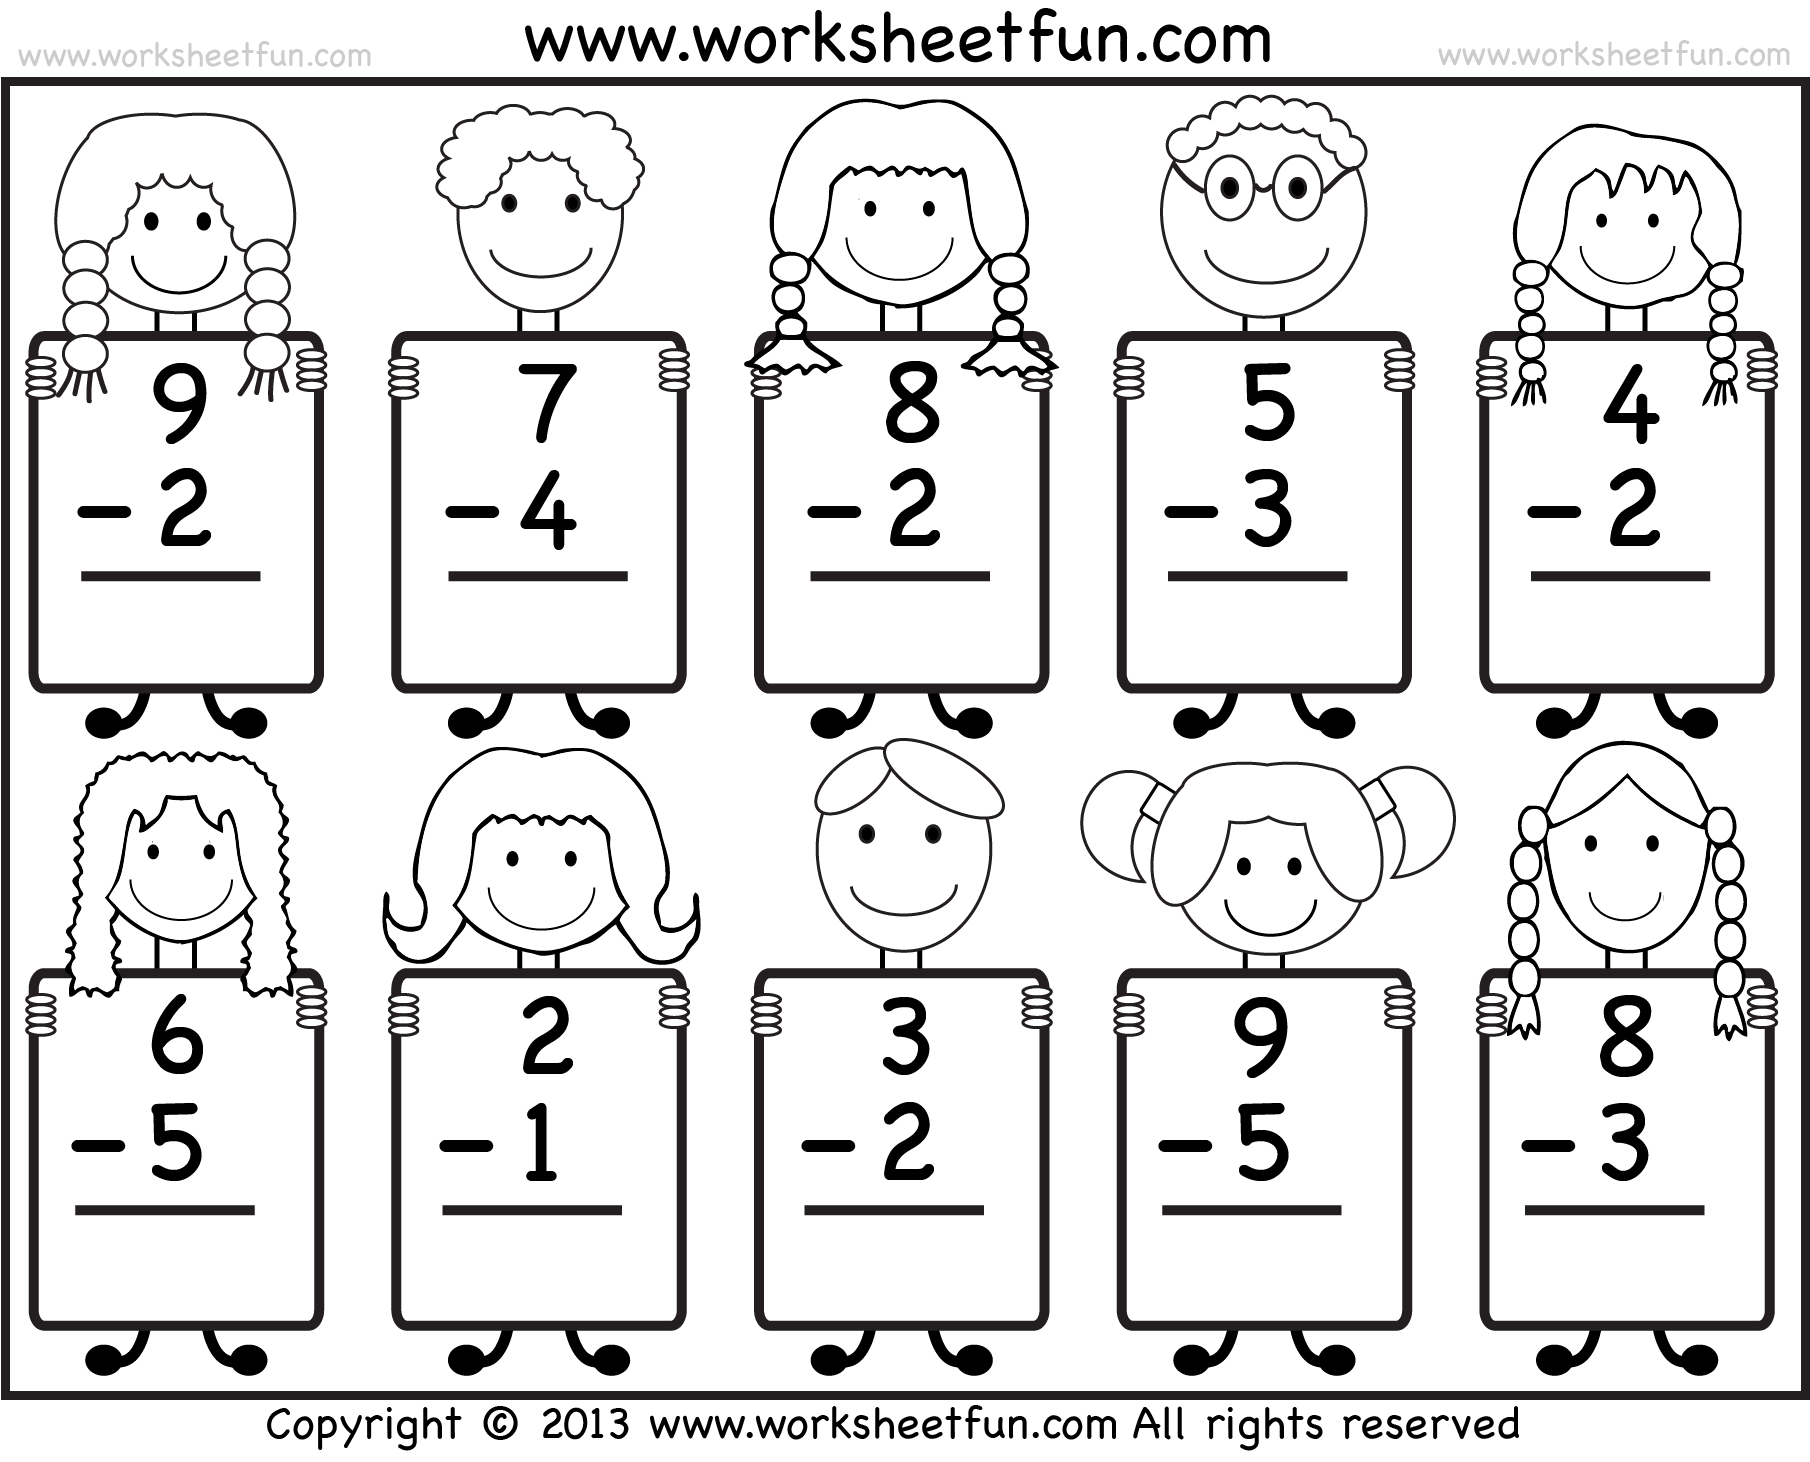 Worksheet Math Worksheets For Kinder beginner subtraction 10 kindergarten worksheets subtraction